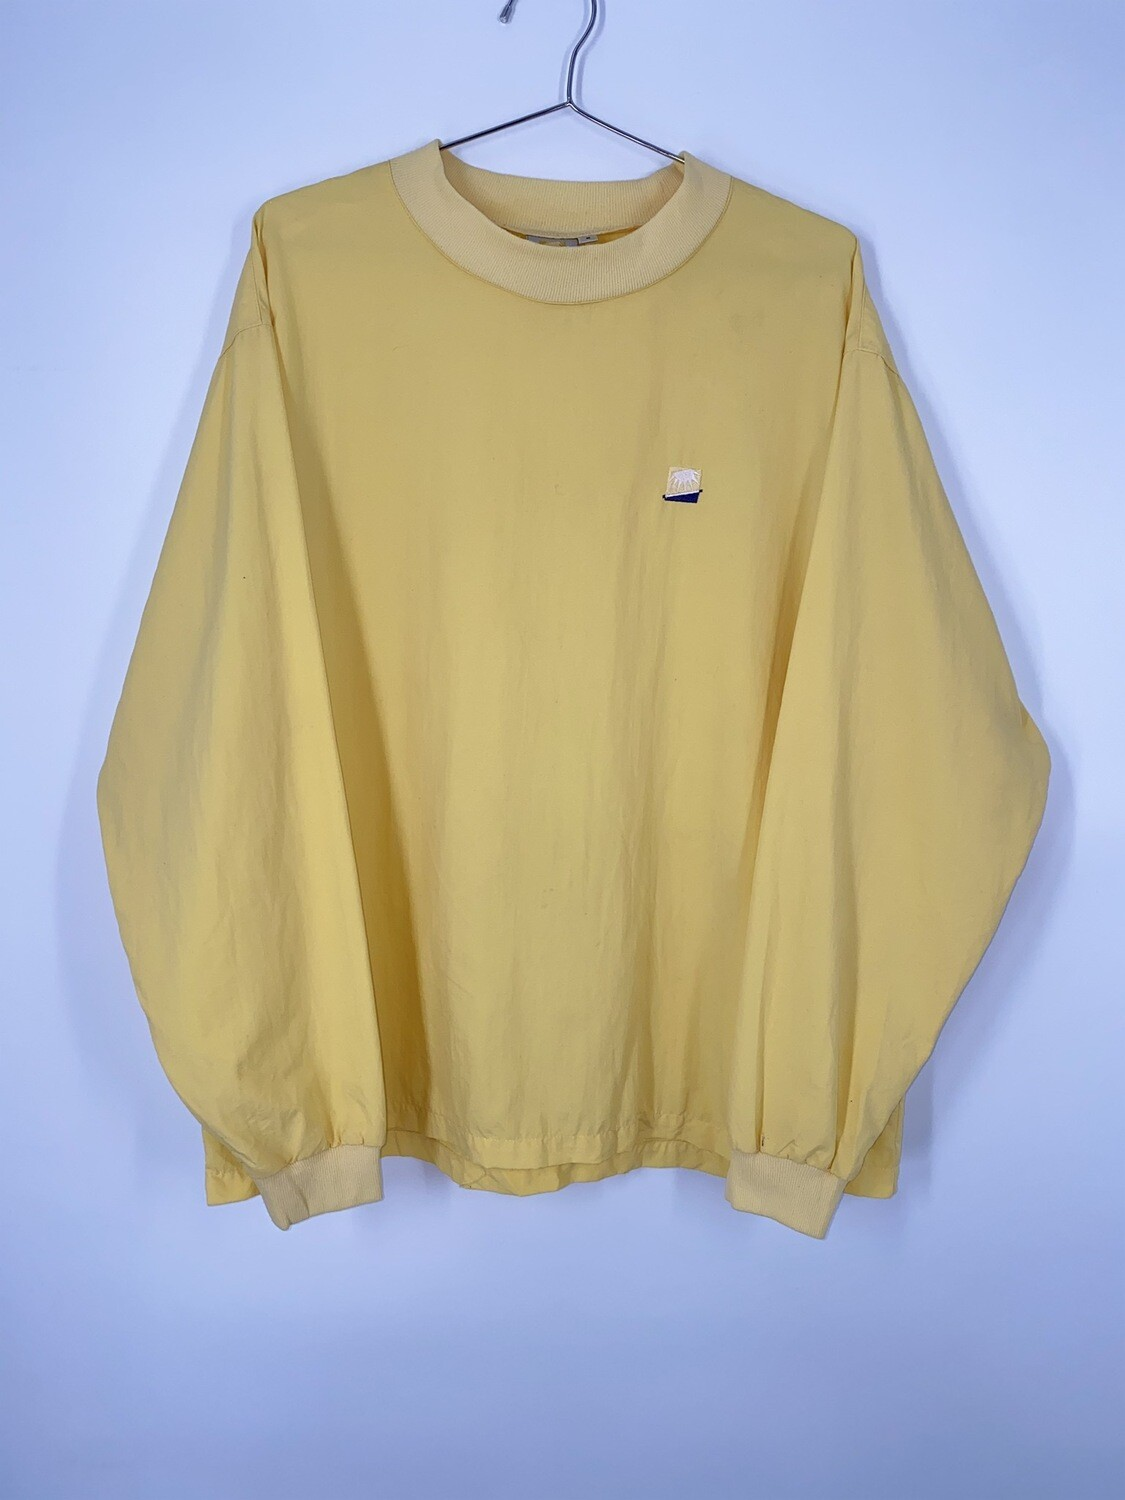 Solumbra Yellow Sports Long Sleeve Top Size M